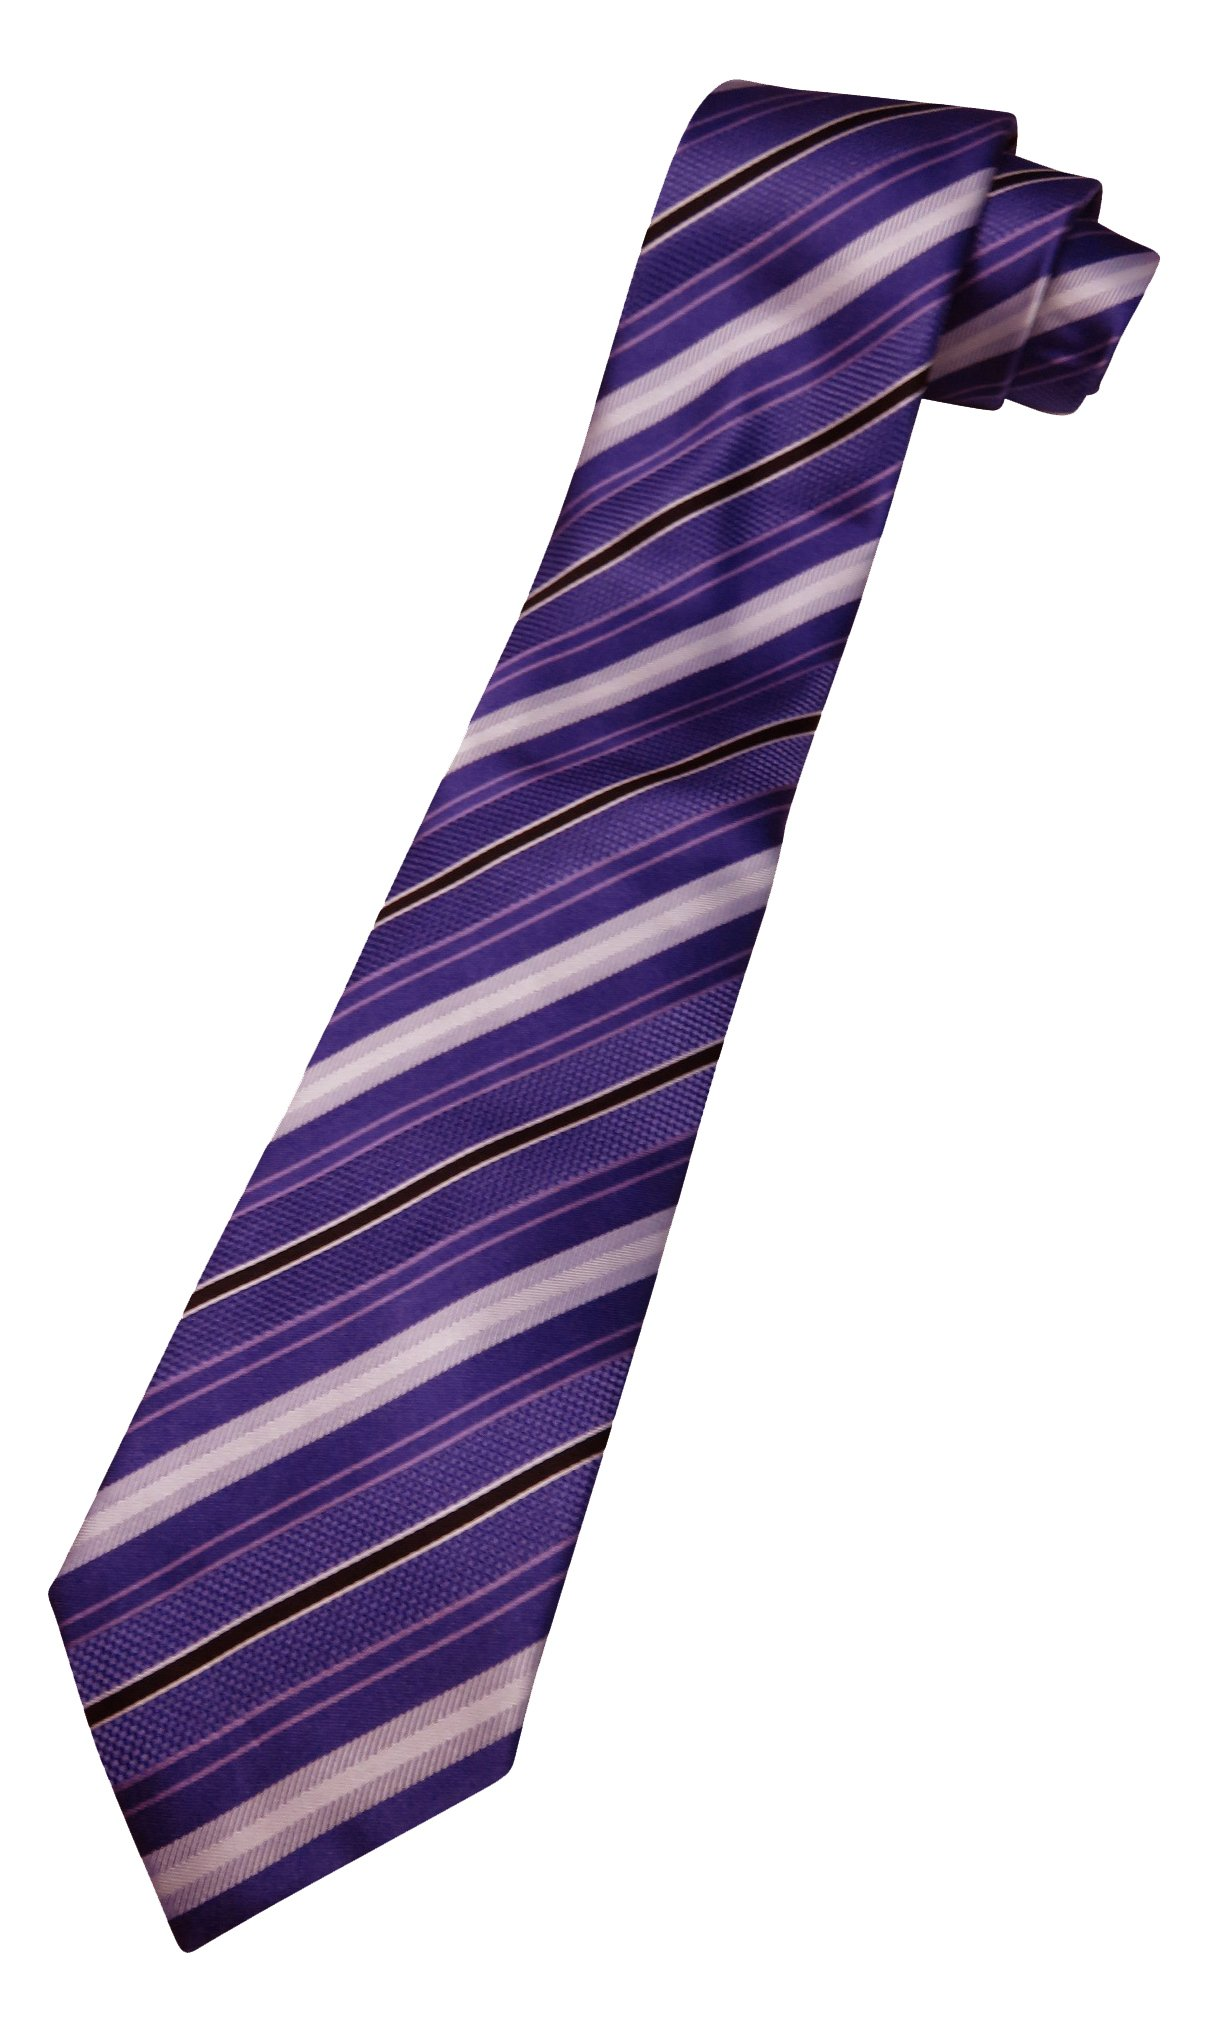 Donald Trump Neck Tie Purple Blue and Silver Striped with Gold Emblem